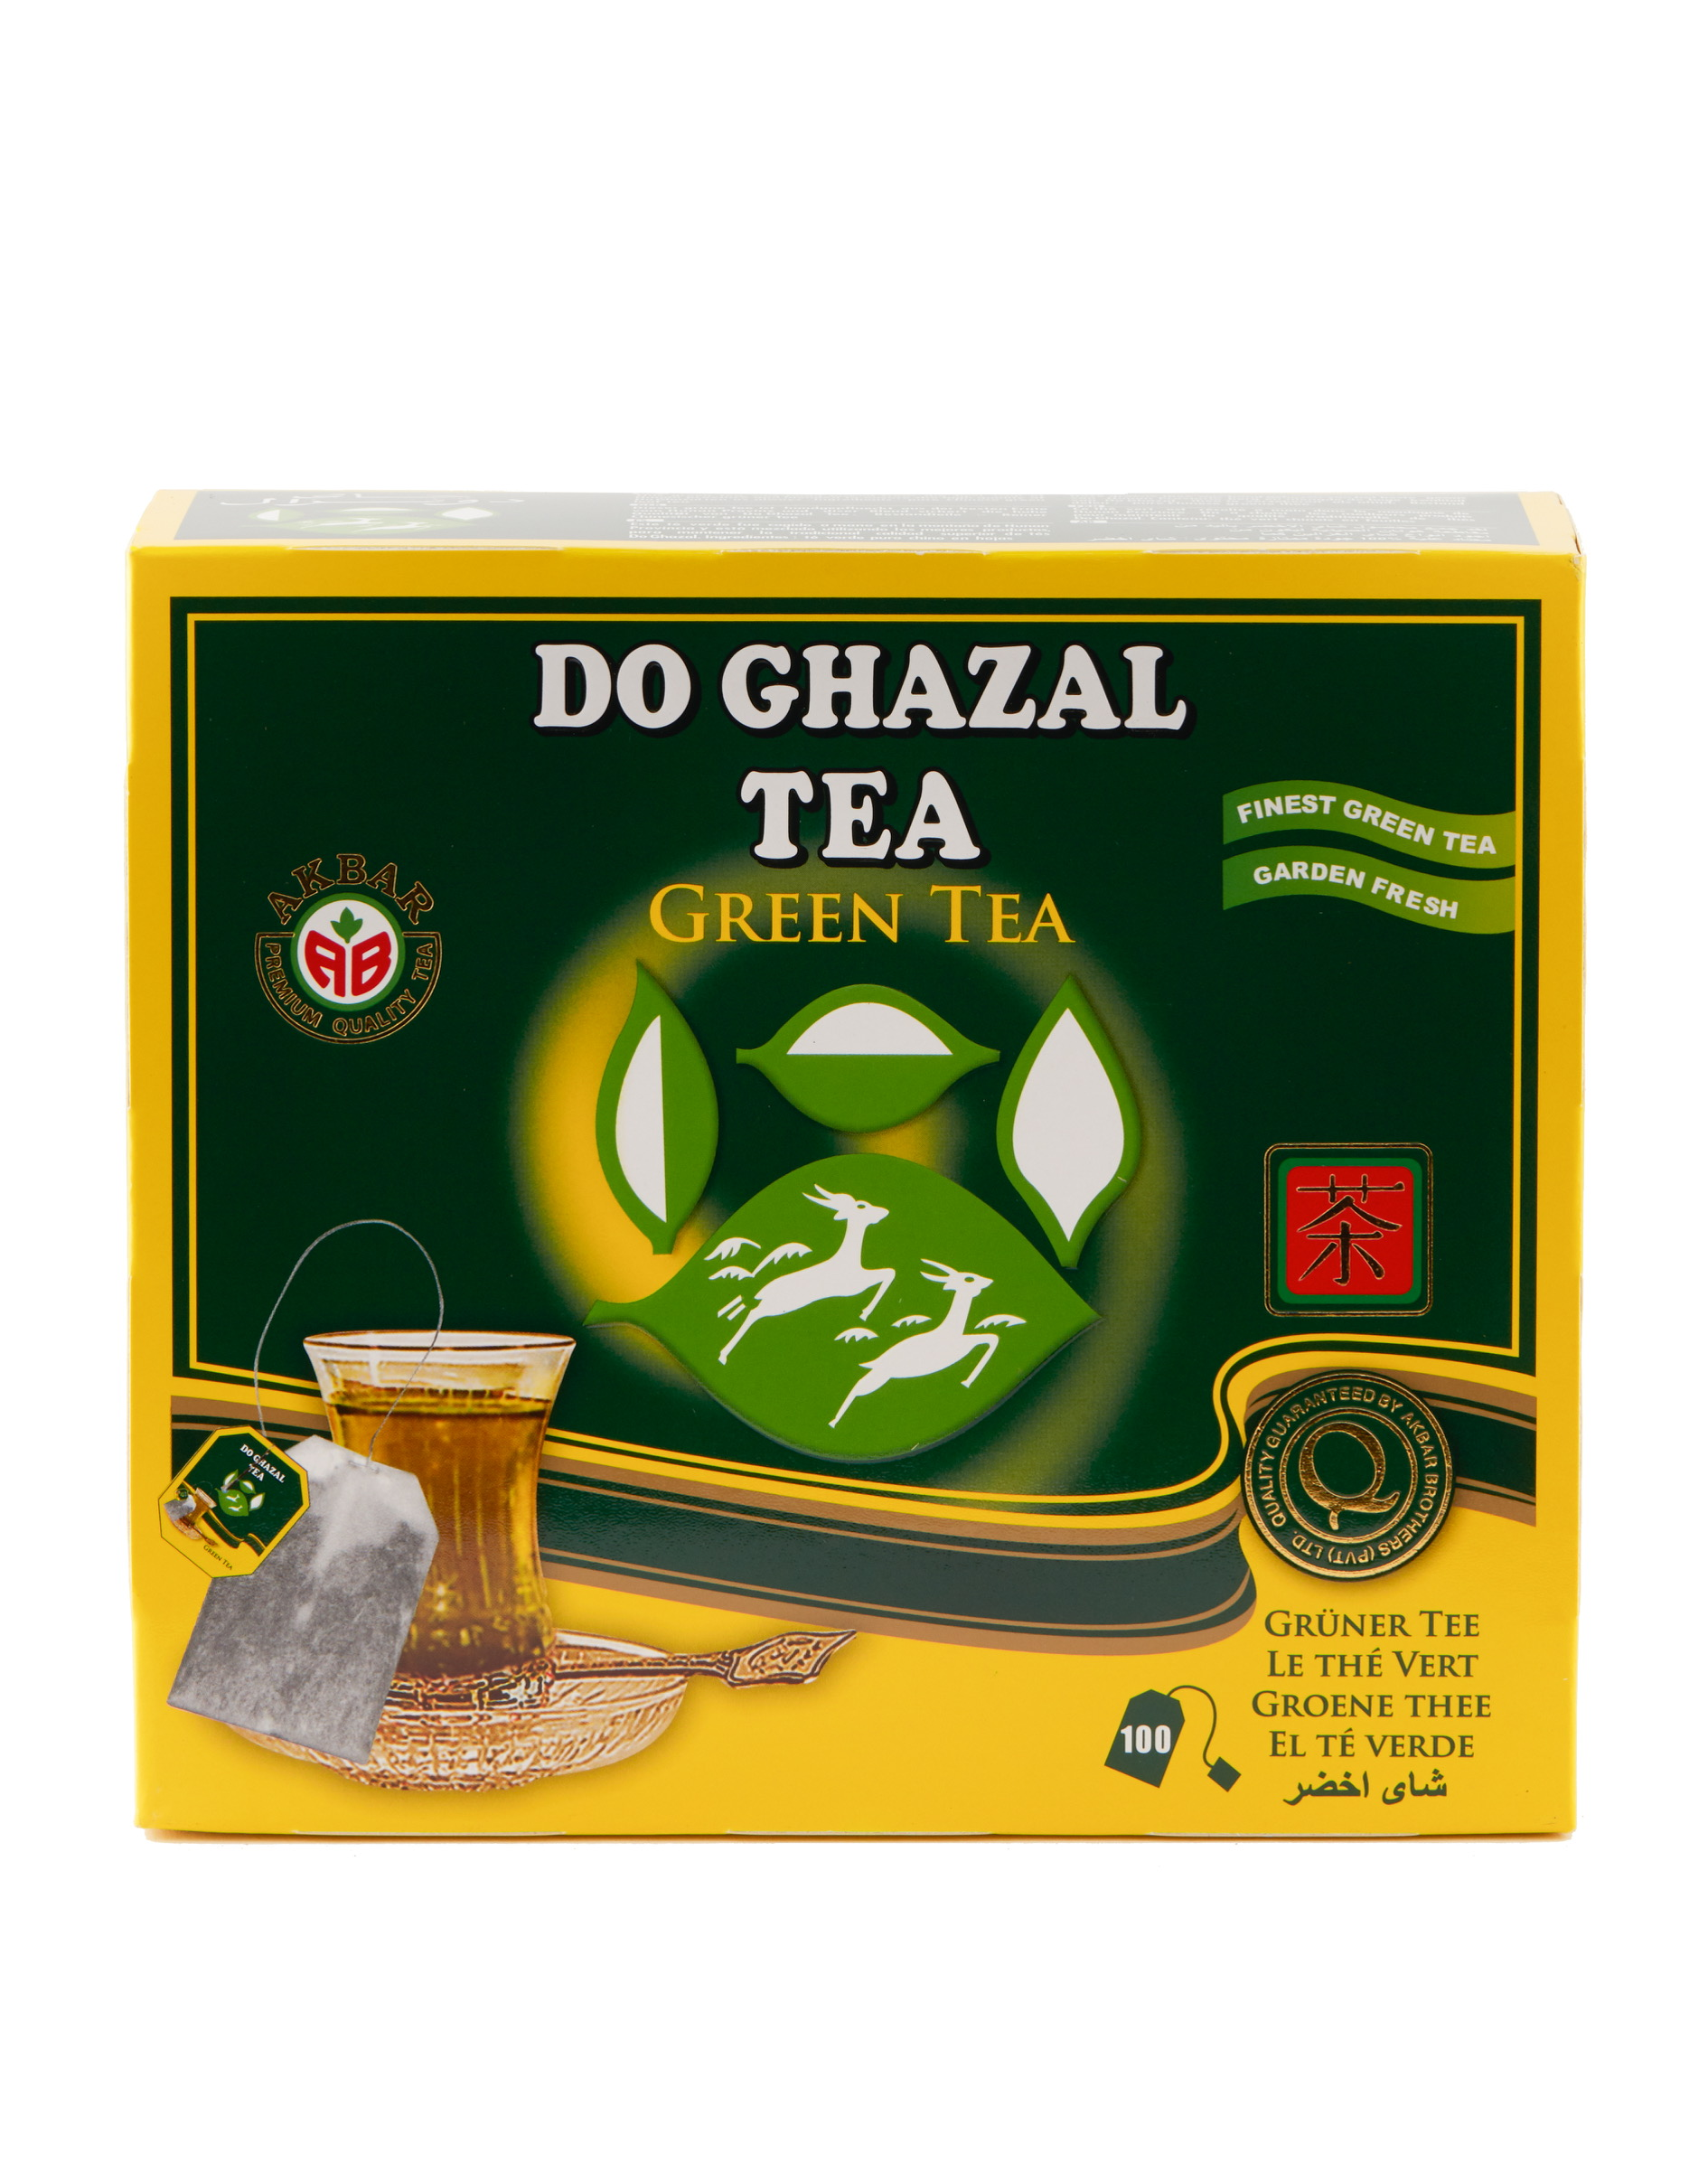 Do ghazal green tea